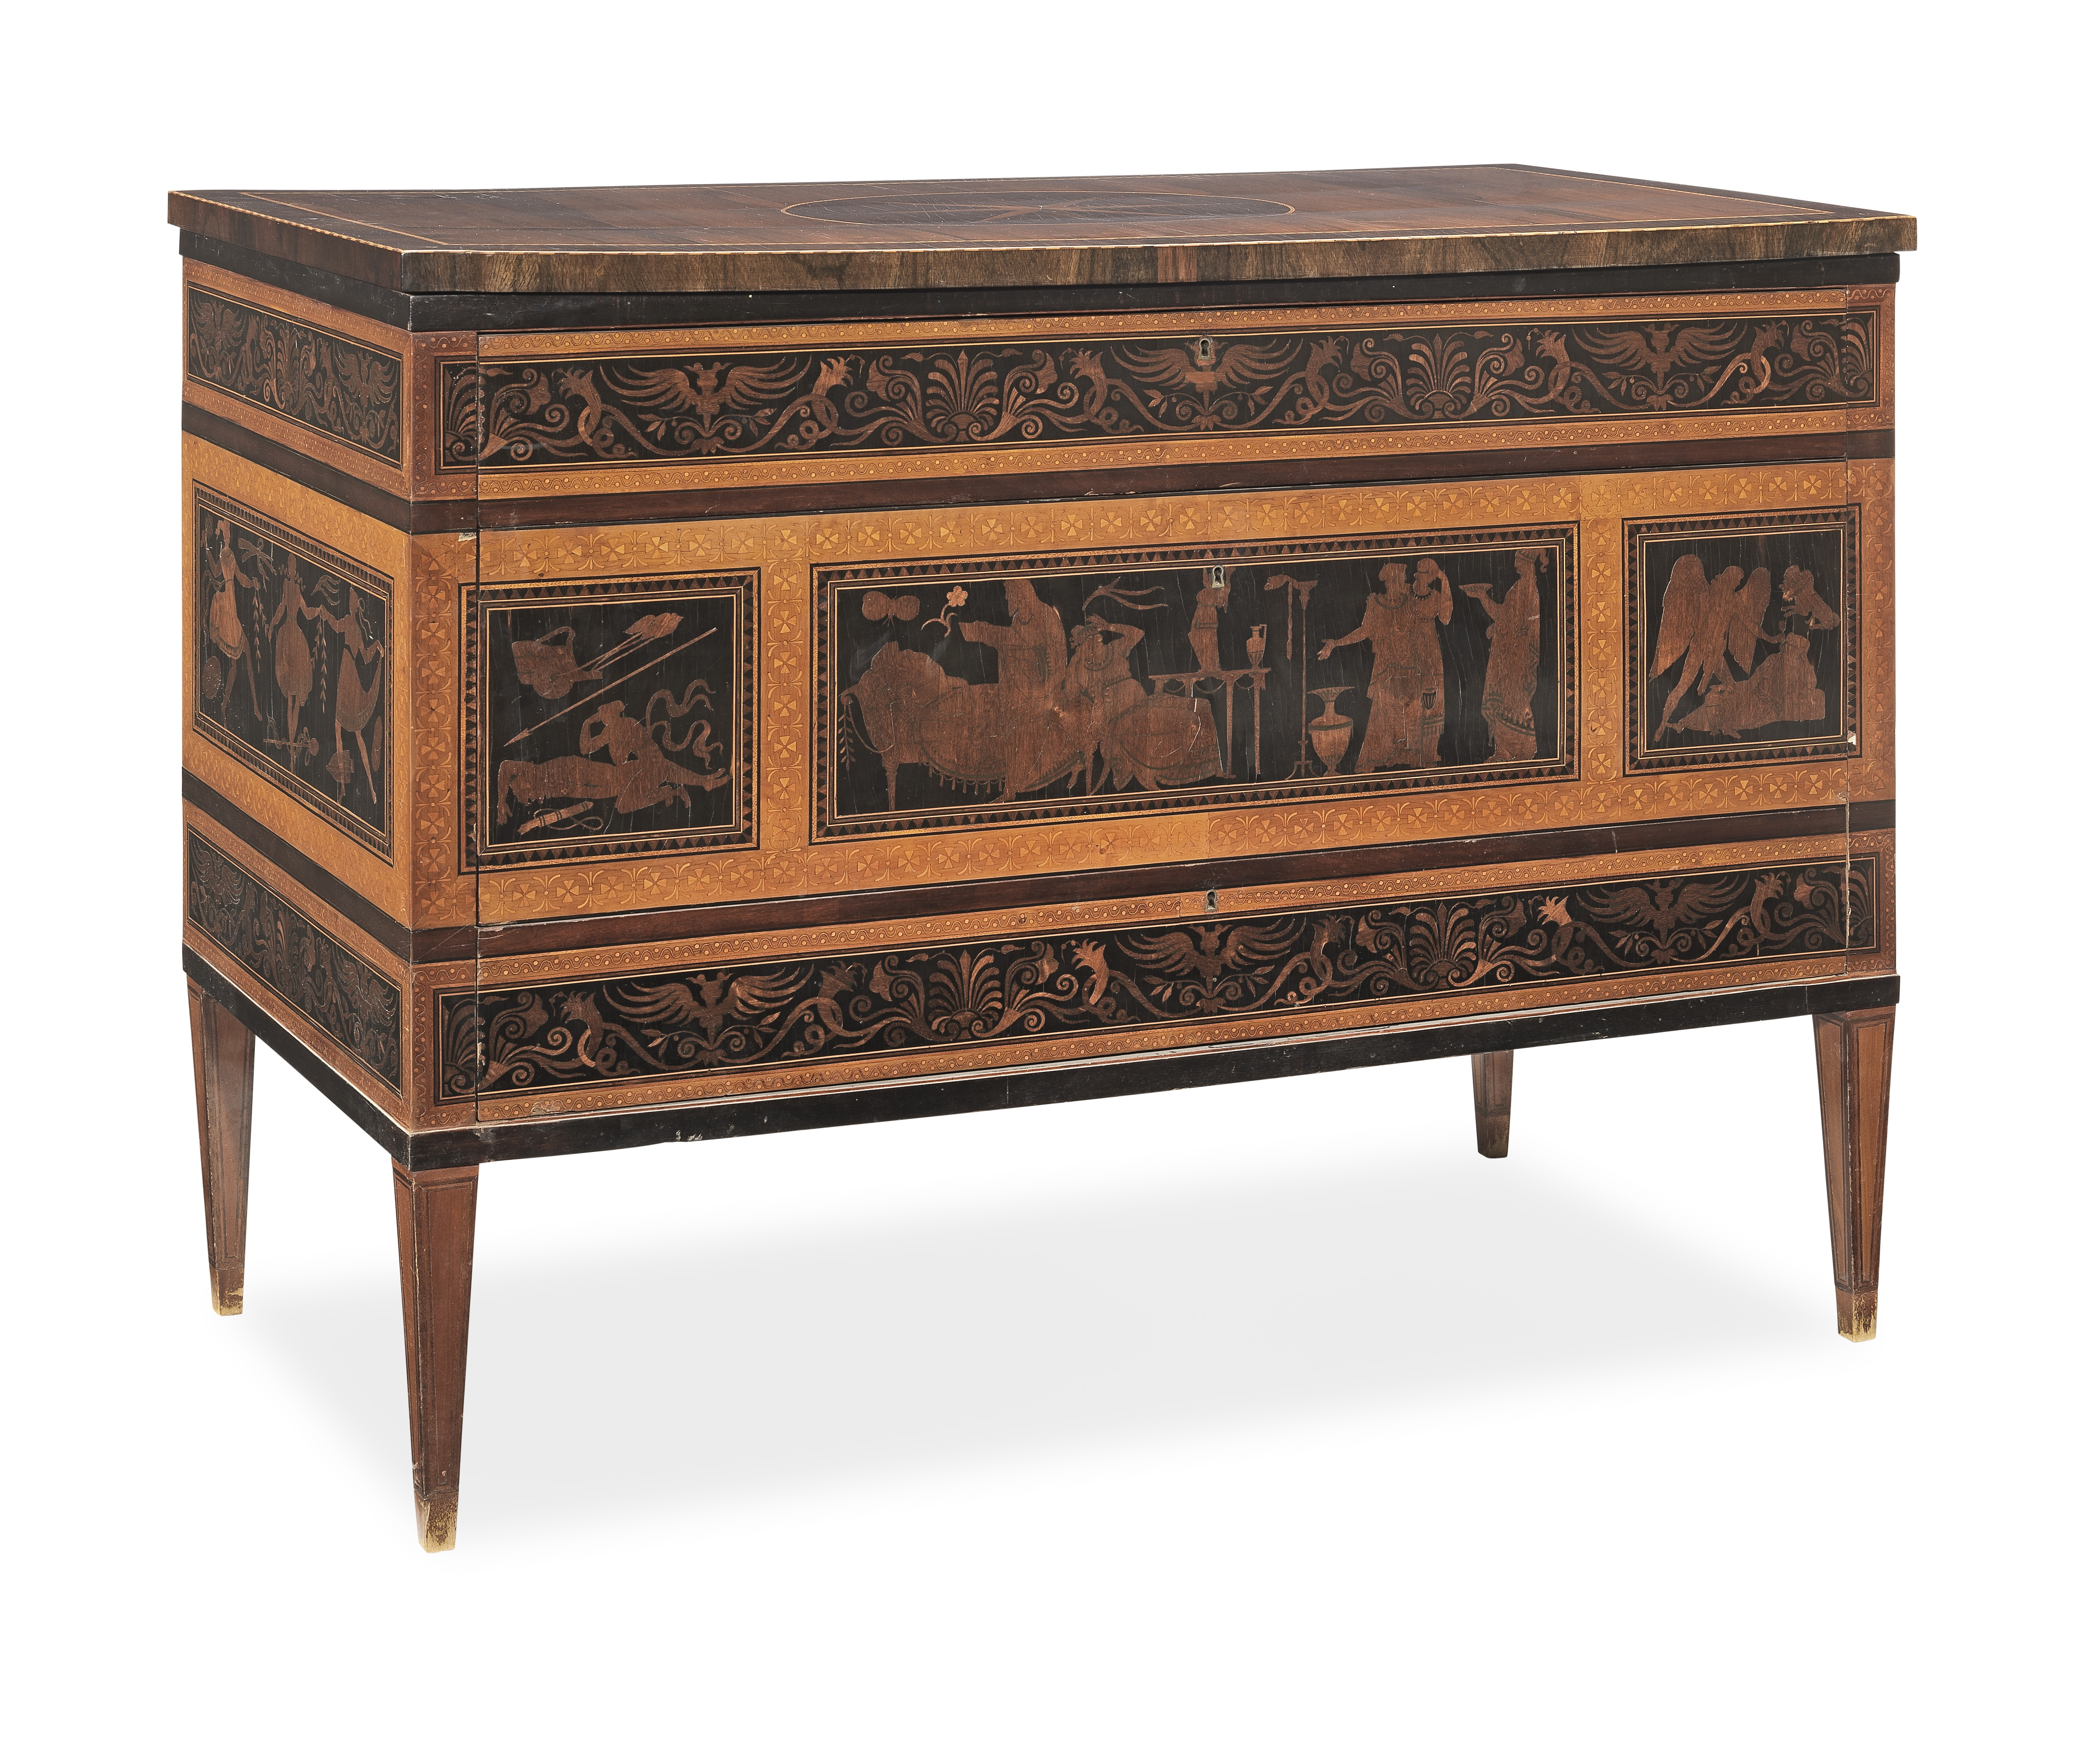 A pair of Italian early 19th century rosewood, ebony, purplewood, sycamore marquetry and chequer-...